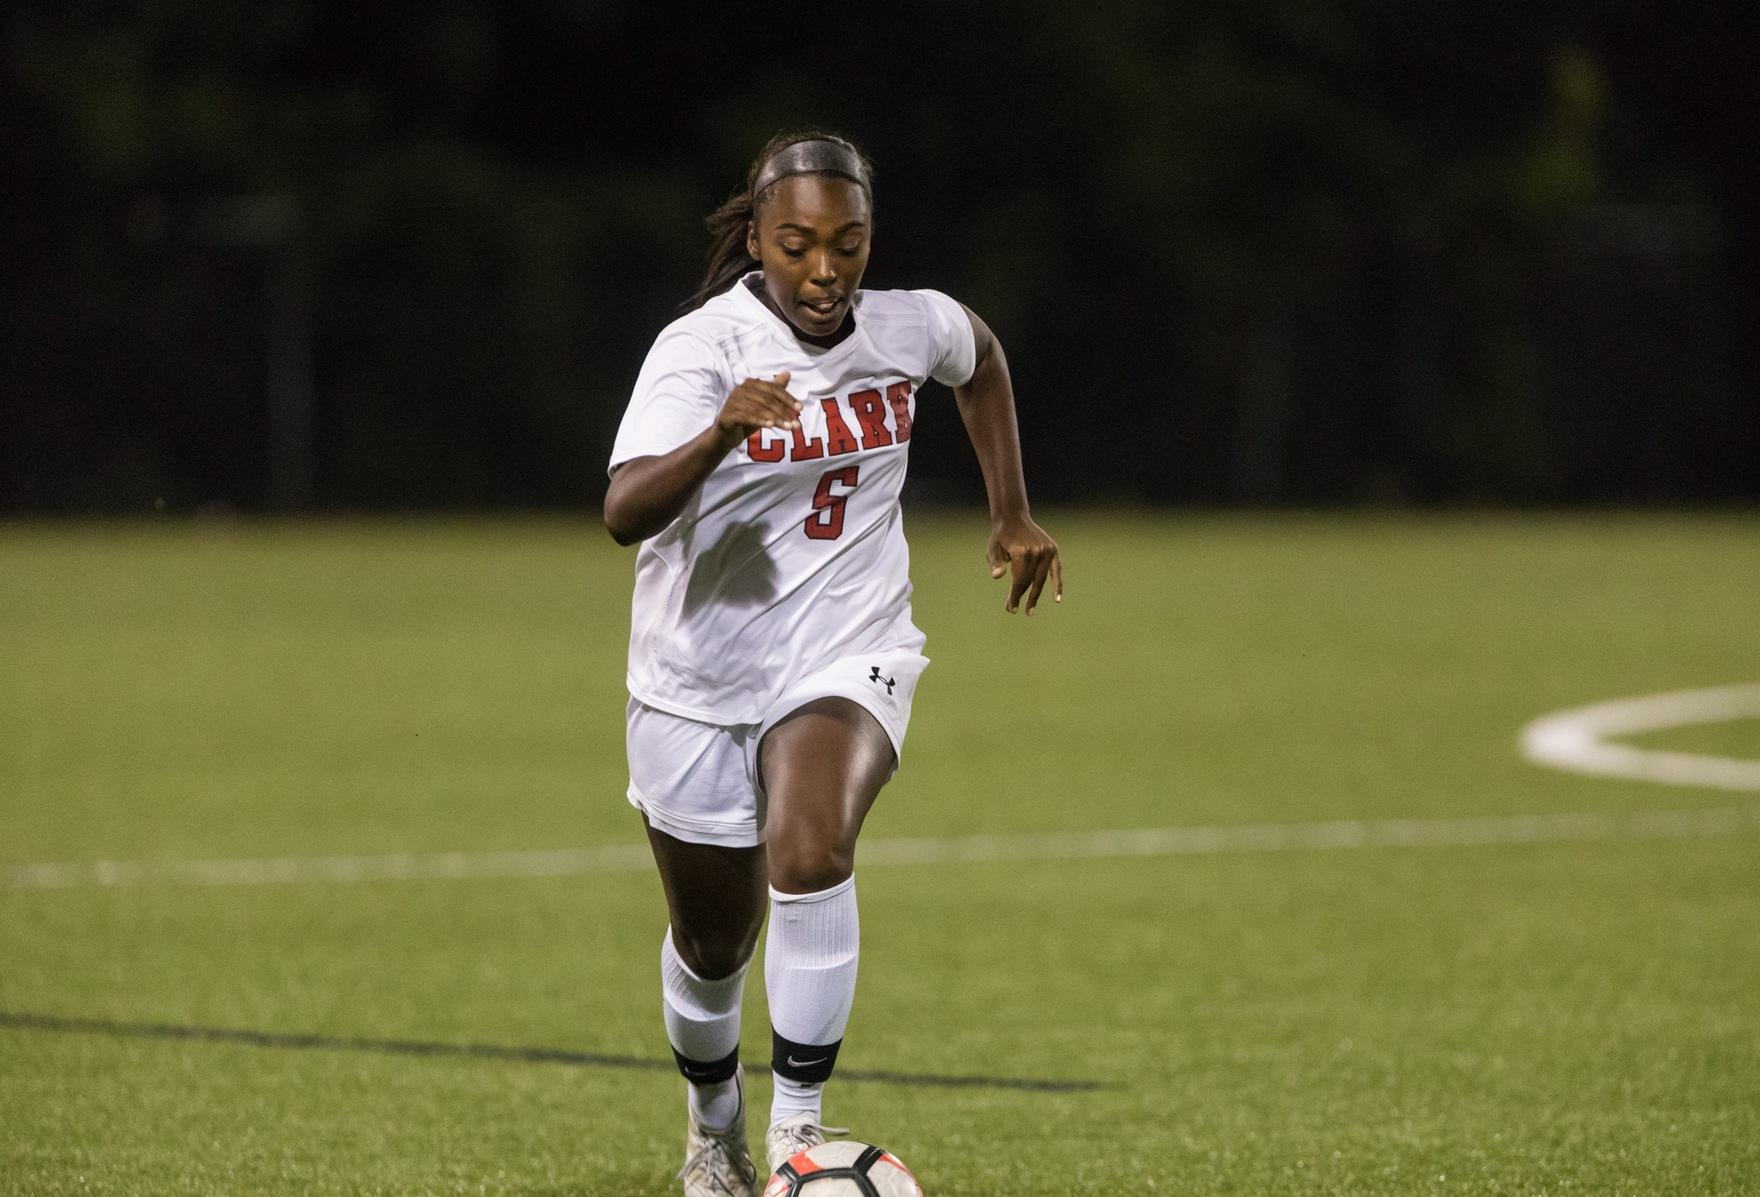 Soccer Plays to 0-0 2 OT Draw With Mount Holyoke